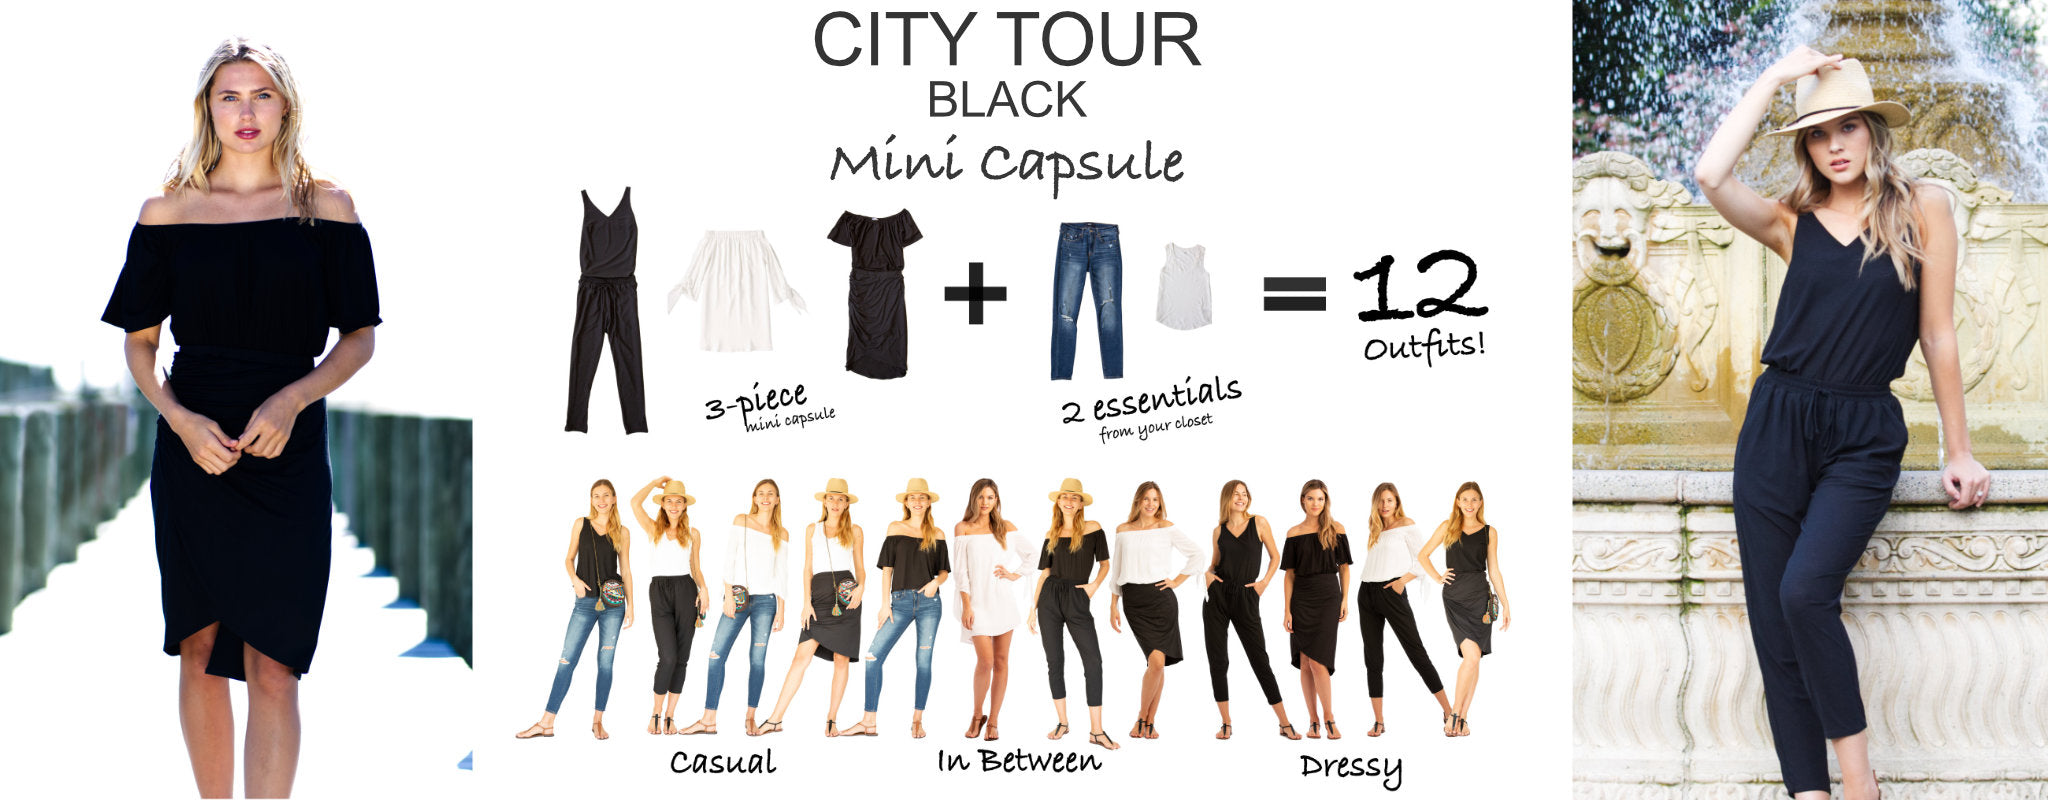 City Tour Mini Capsule Black